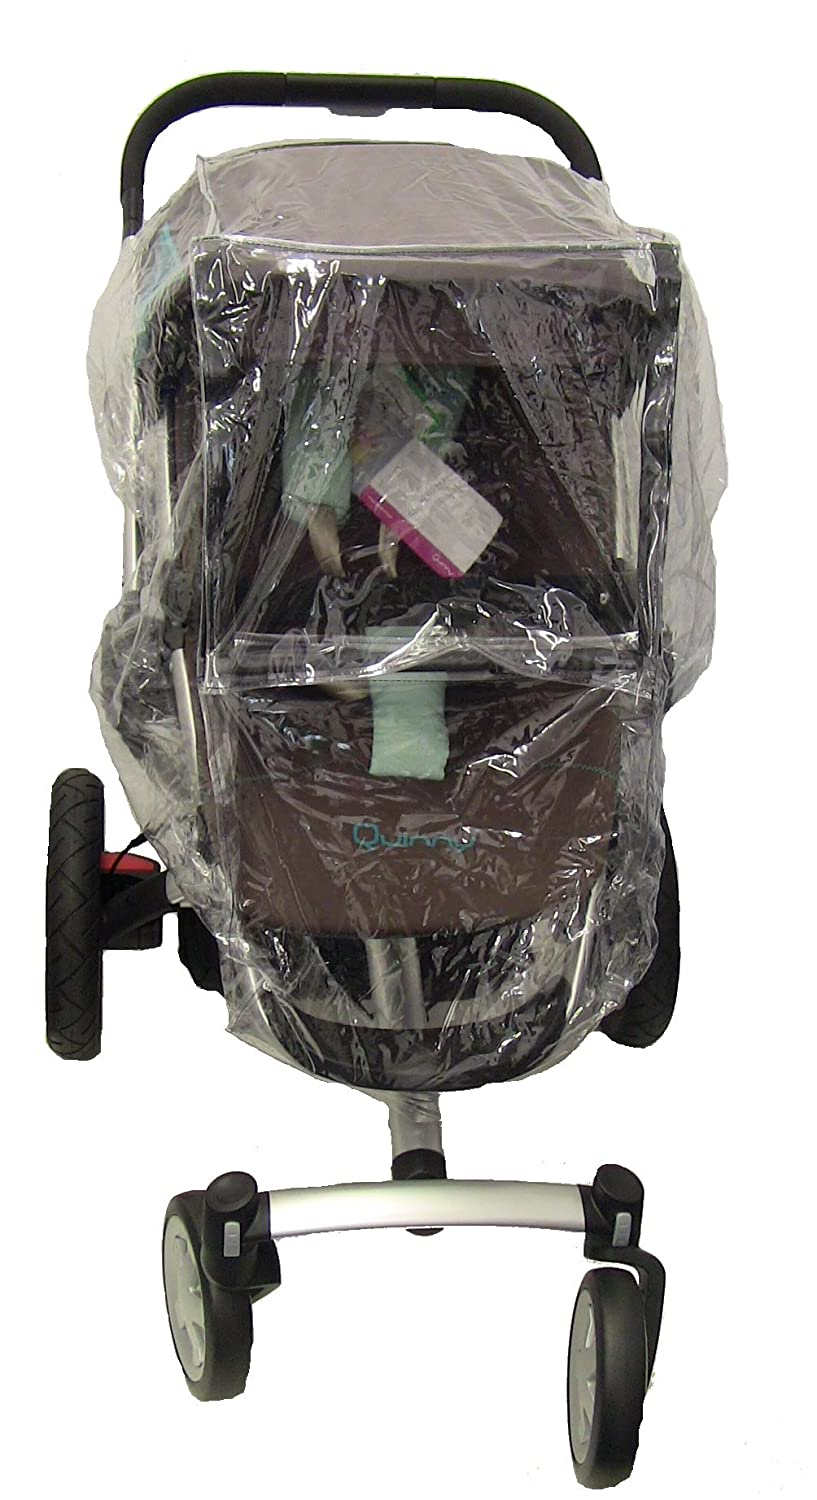 Koodee Raincover to Fit Quinny Buzz Pushchair for Newborn (Transparent) buzz1